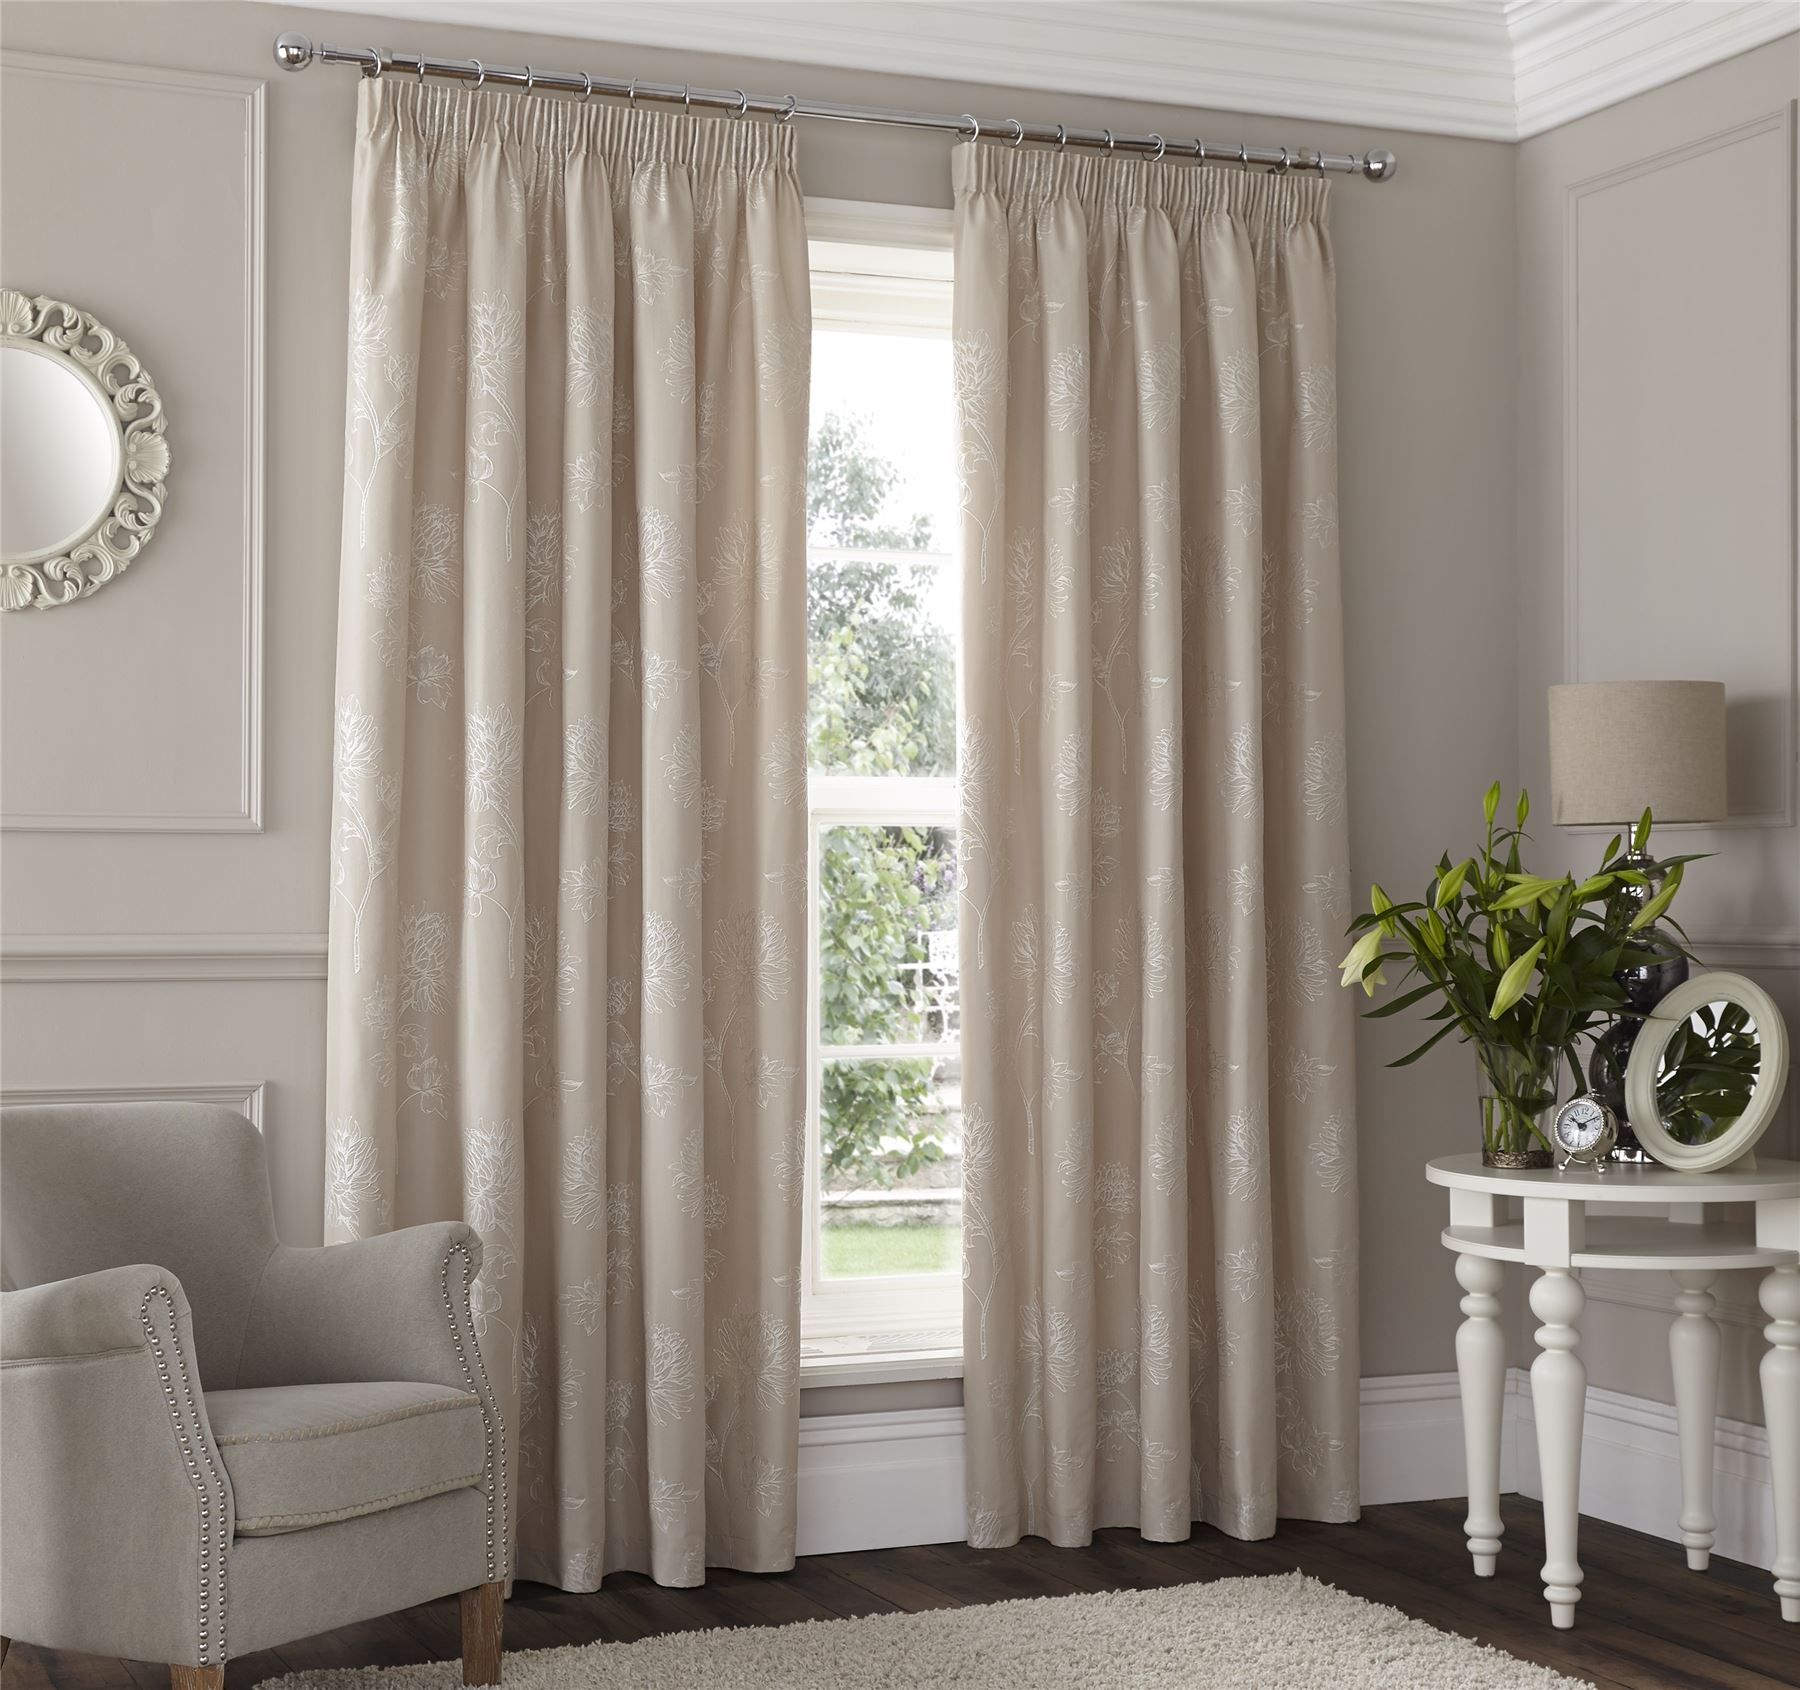 Beige embroidered floral lined pencil pleat curtains - Www heytens com rideaux ...